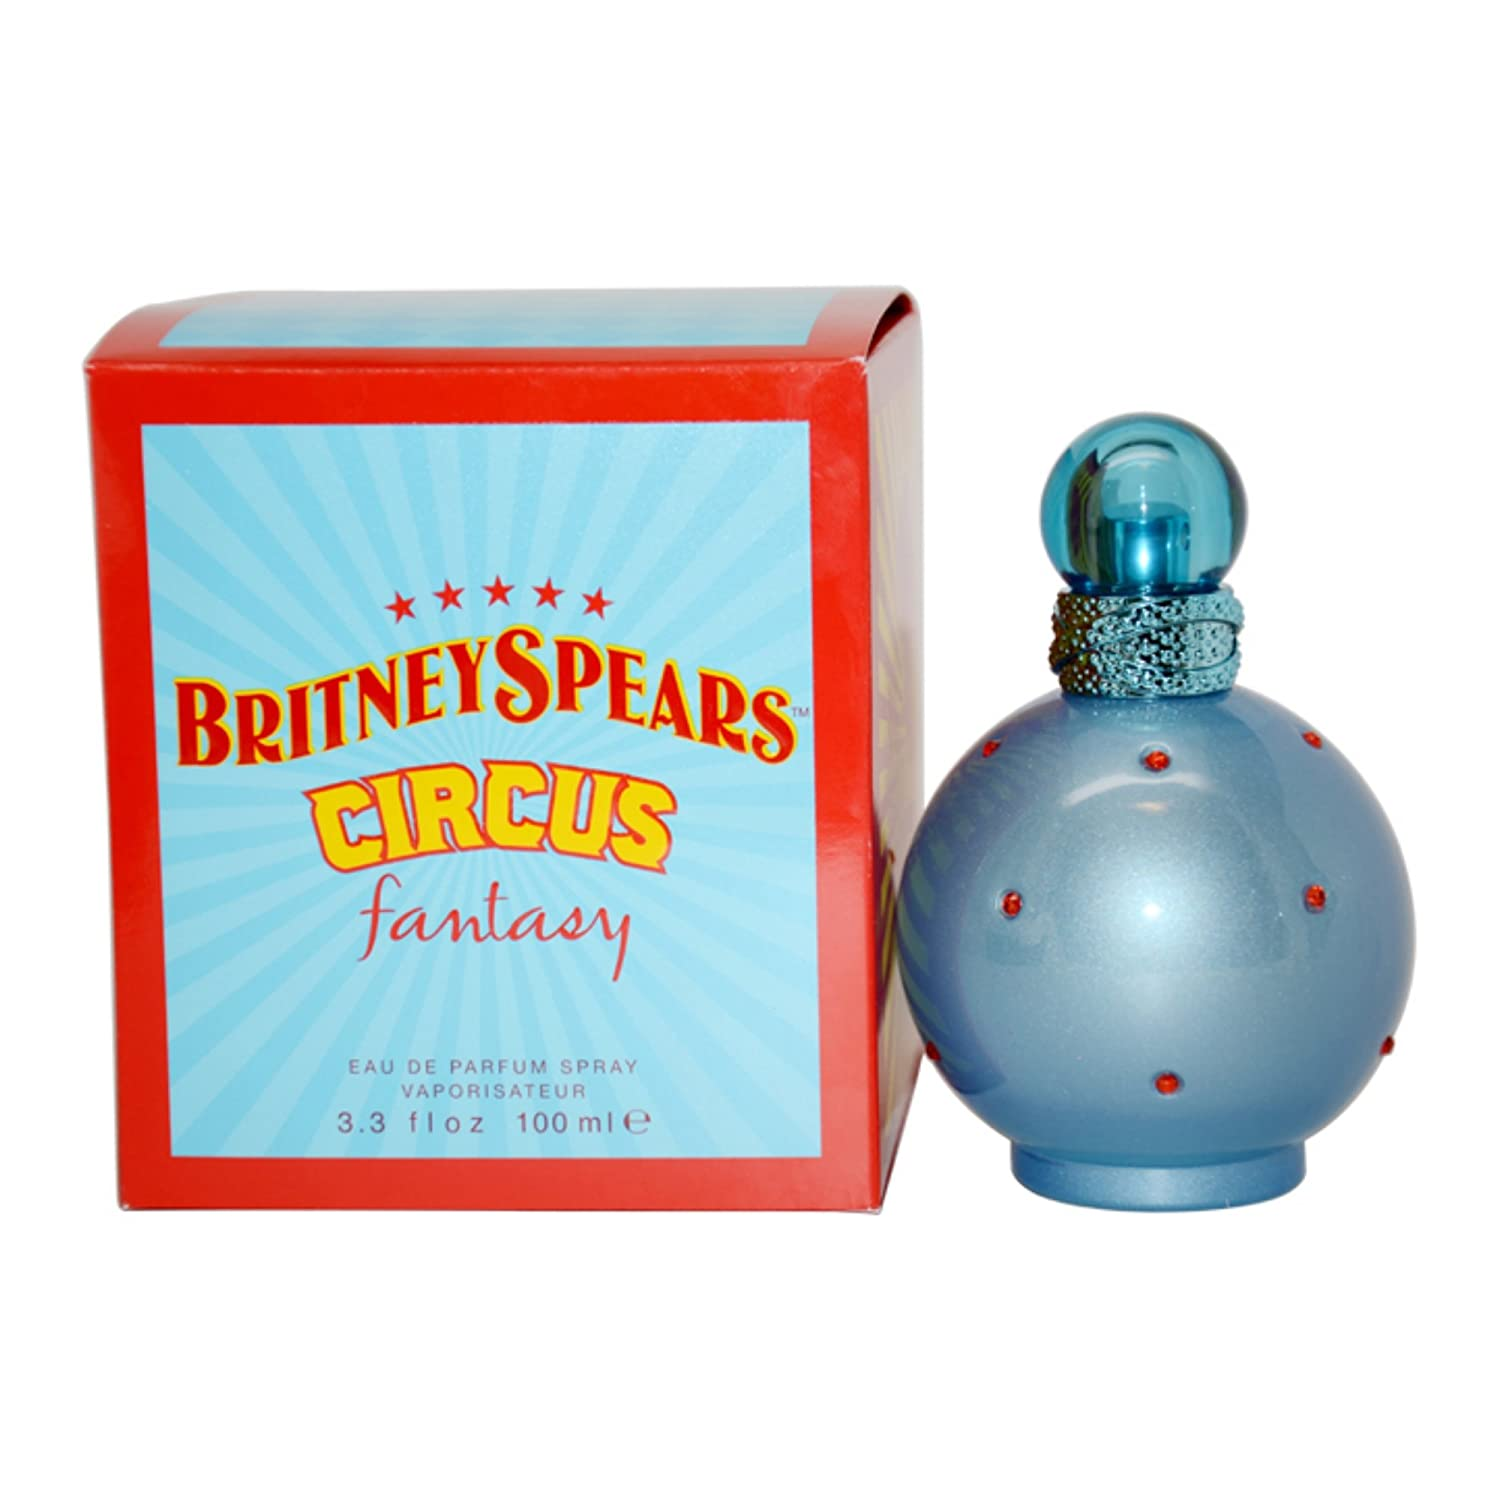 Britney Spears Circus Fantasy Eau De Parfum Spray 100 ml 181943 40966_-100ml